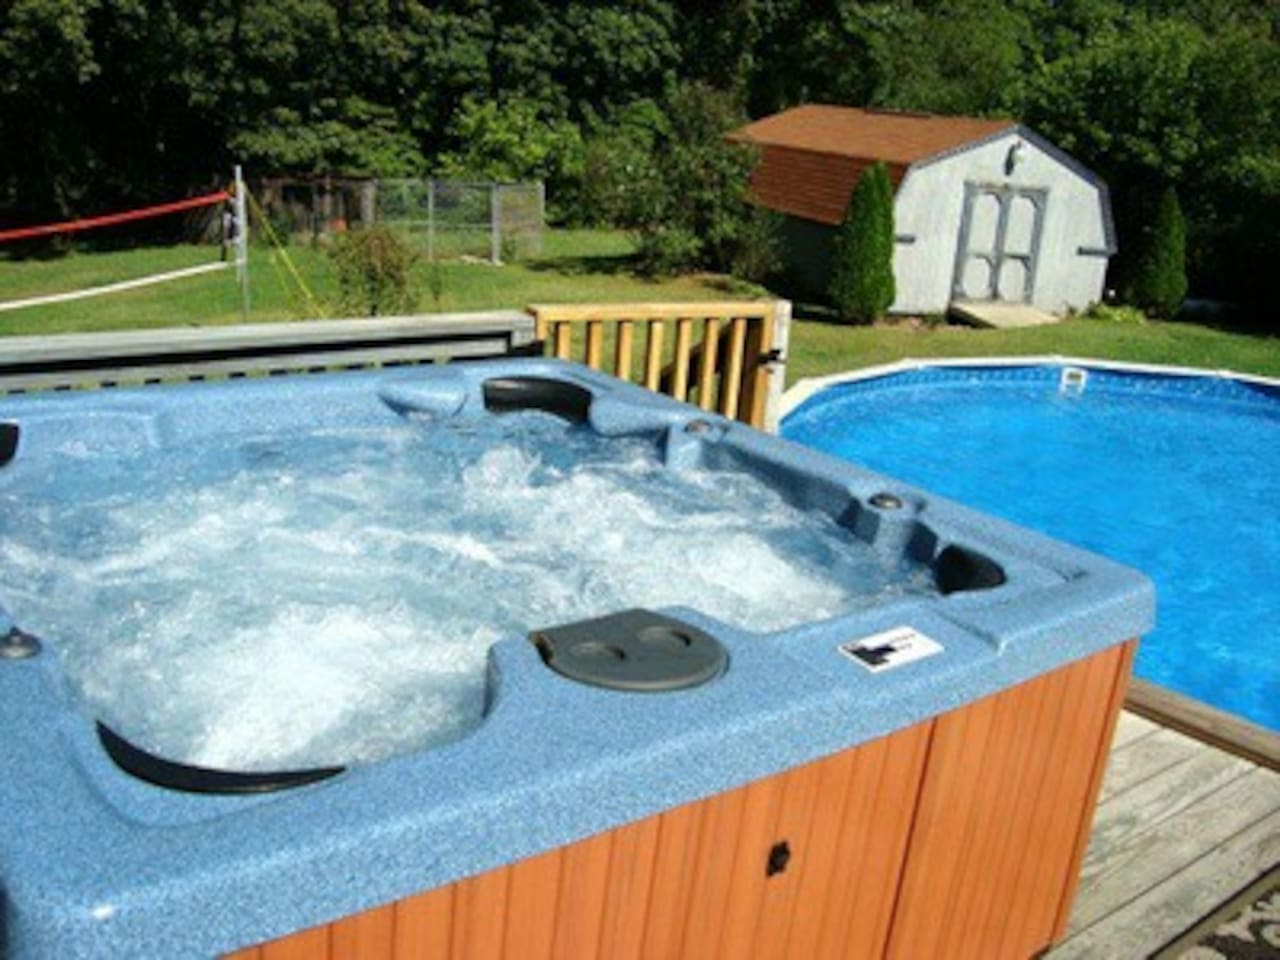 Relax in our 6 person hot tub